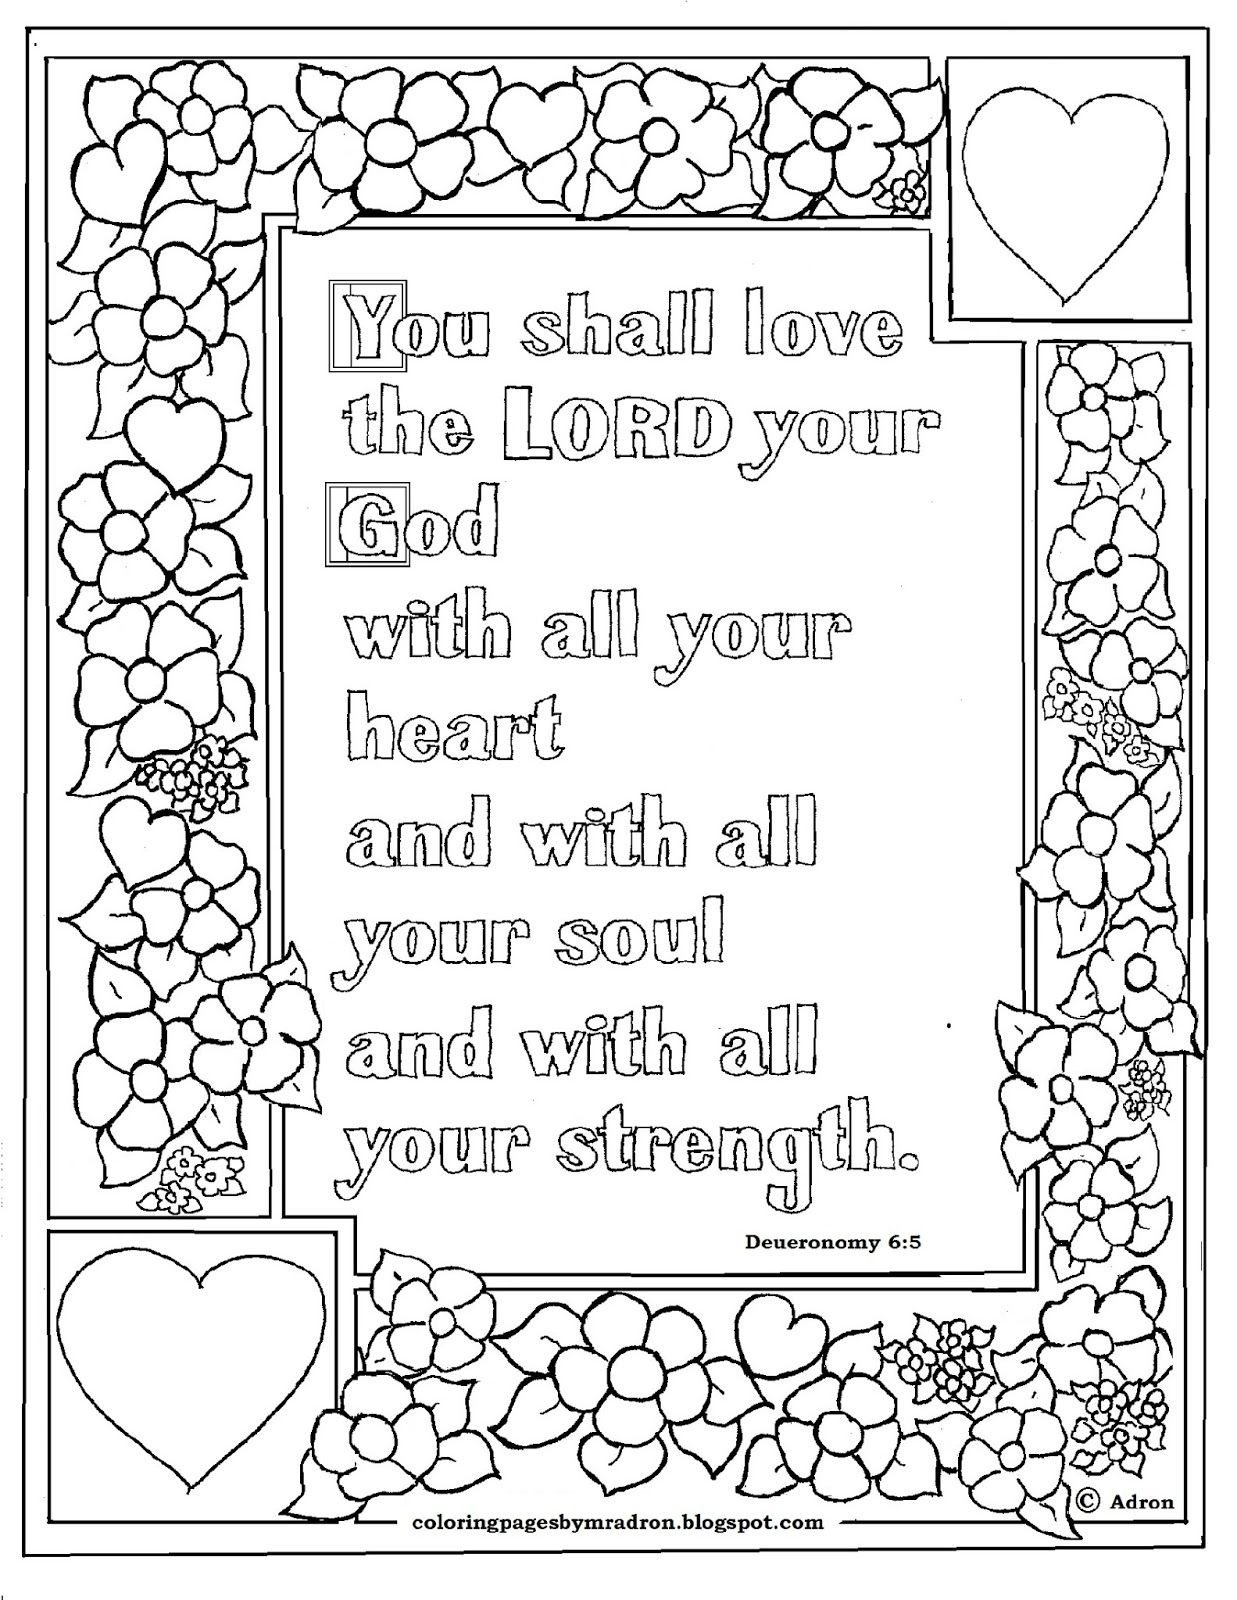 Deuteronomy 6 5 Print And Color Page Bible Verse Coloring Page